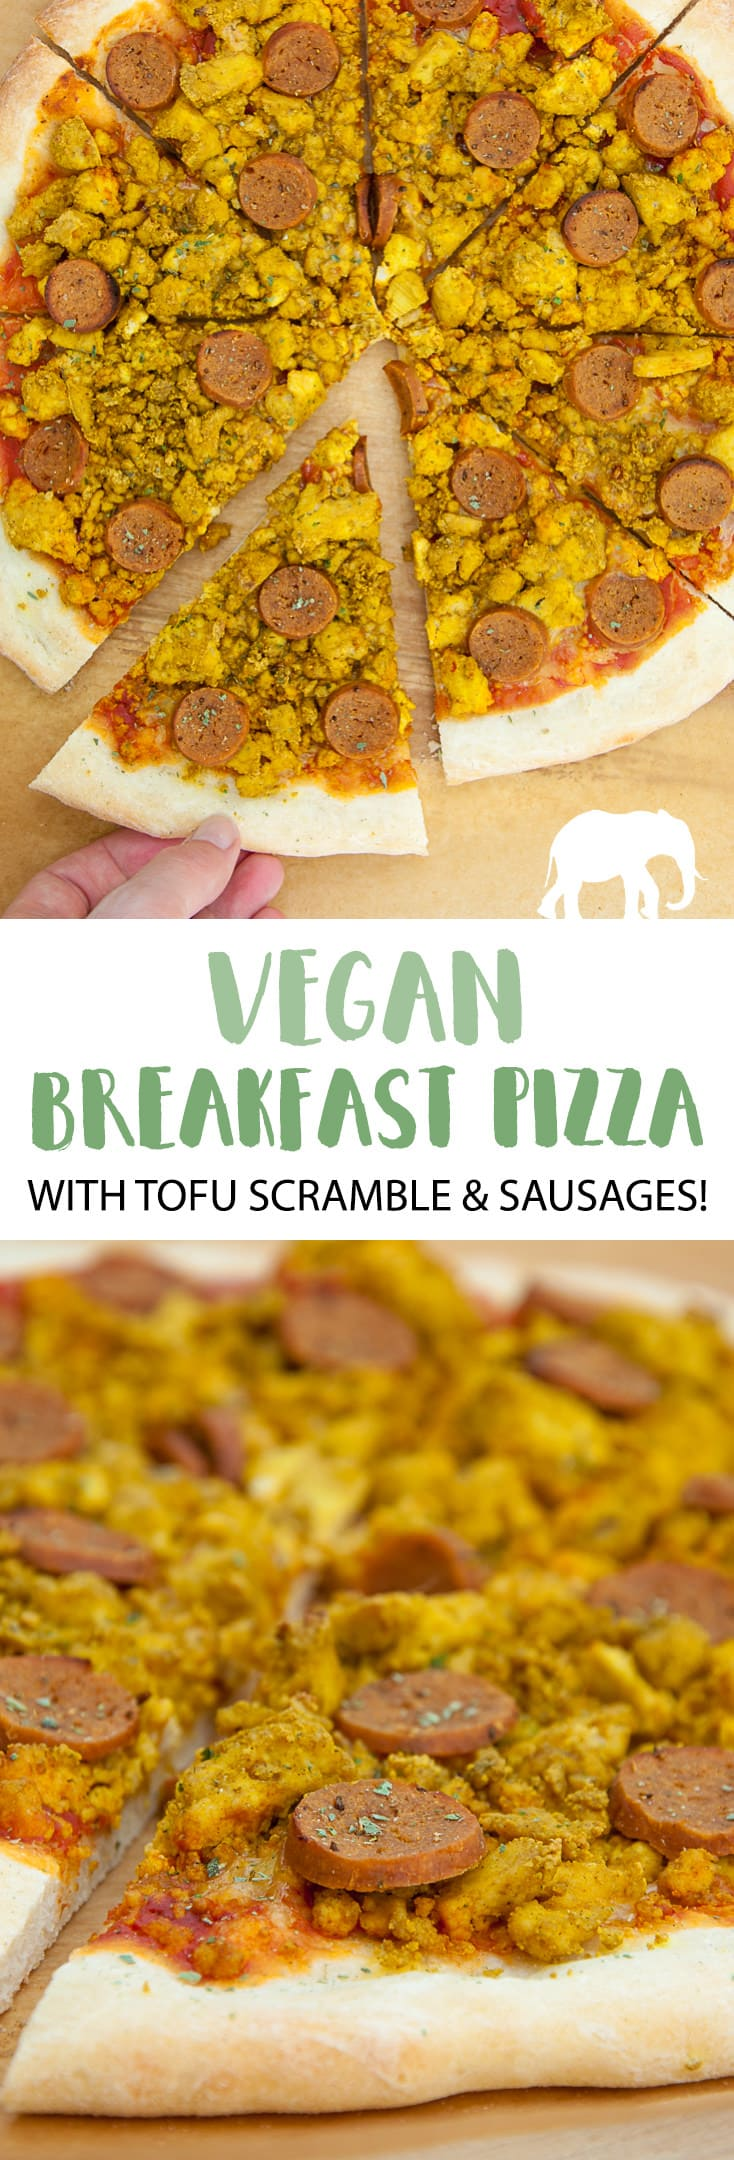 Vegan Breakfast Pizza with tofu scramble and seitan sausages #vegan #breakfast #pizza | ElephantasticVegan.com